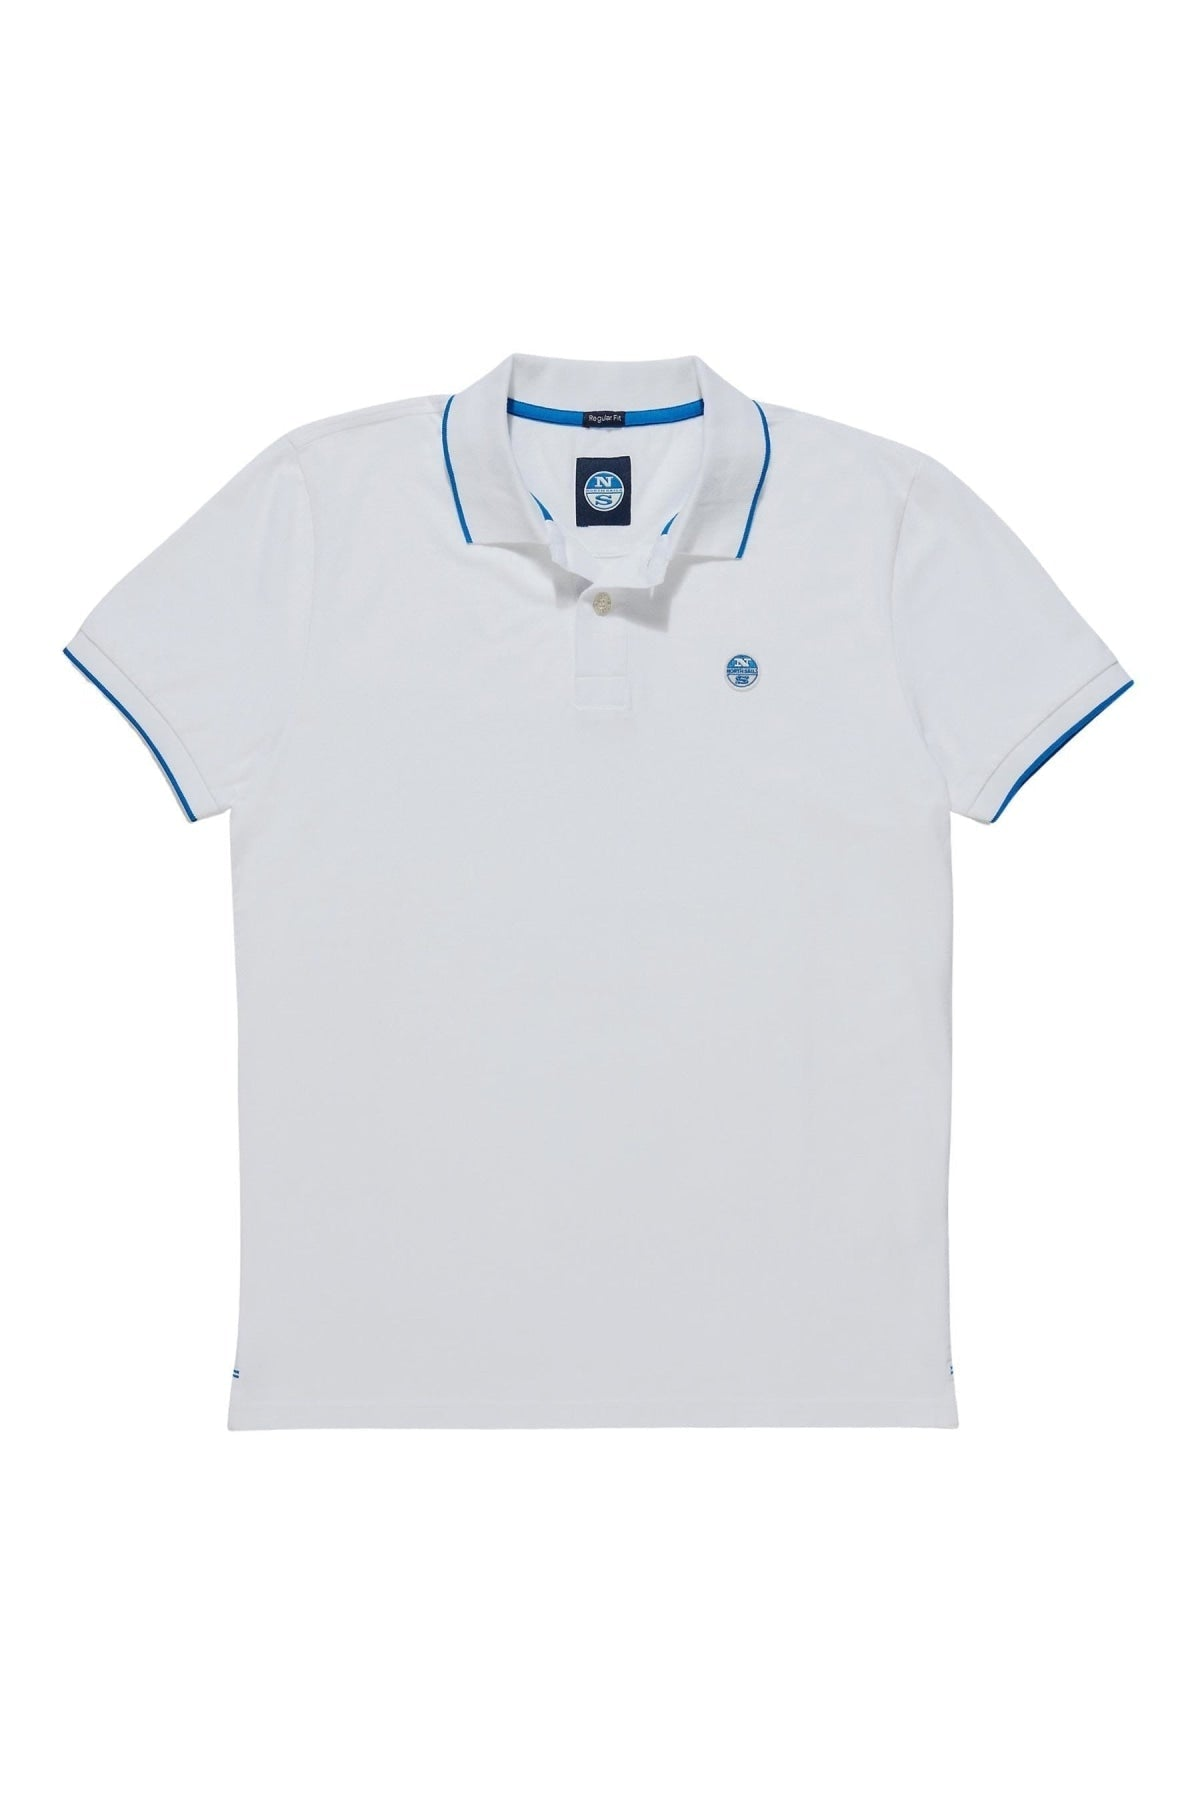 North Sails North Sails Cotton Pique Polo Shirt | L / White / Legacy Secret Label